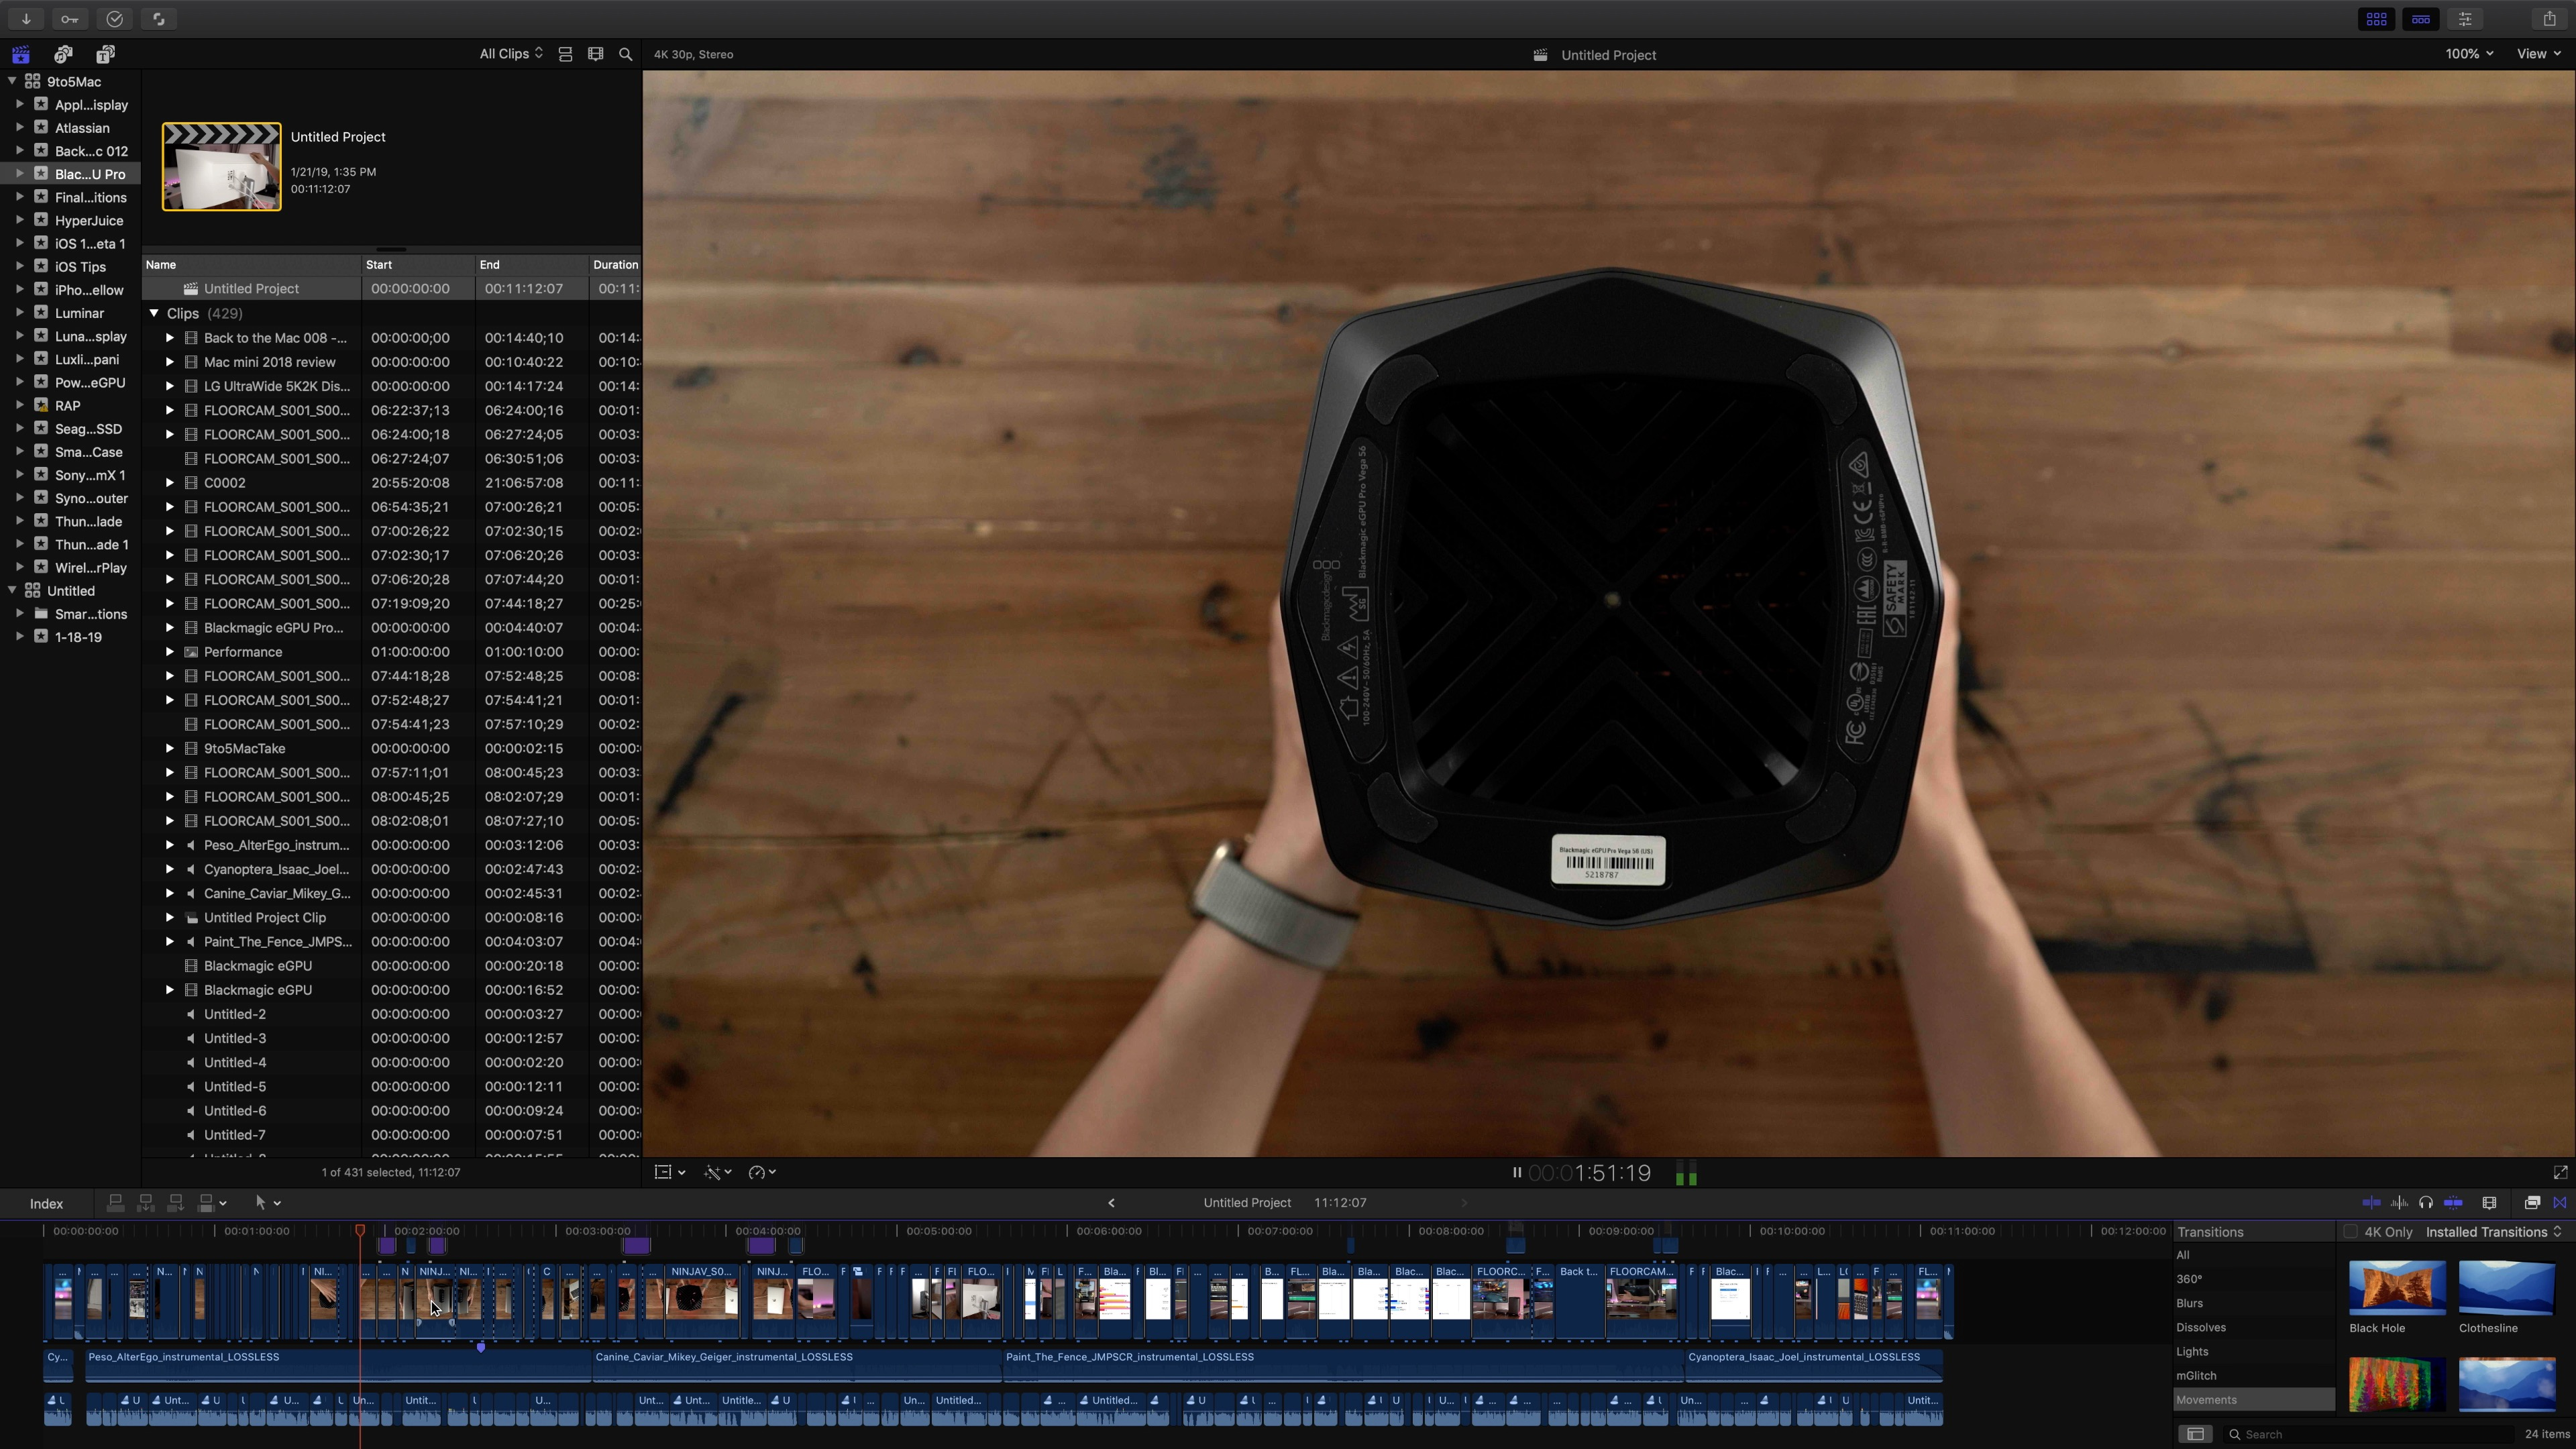 Apple releases Final Cut Pro 10.4.6 with stability and bug fixes